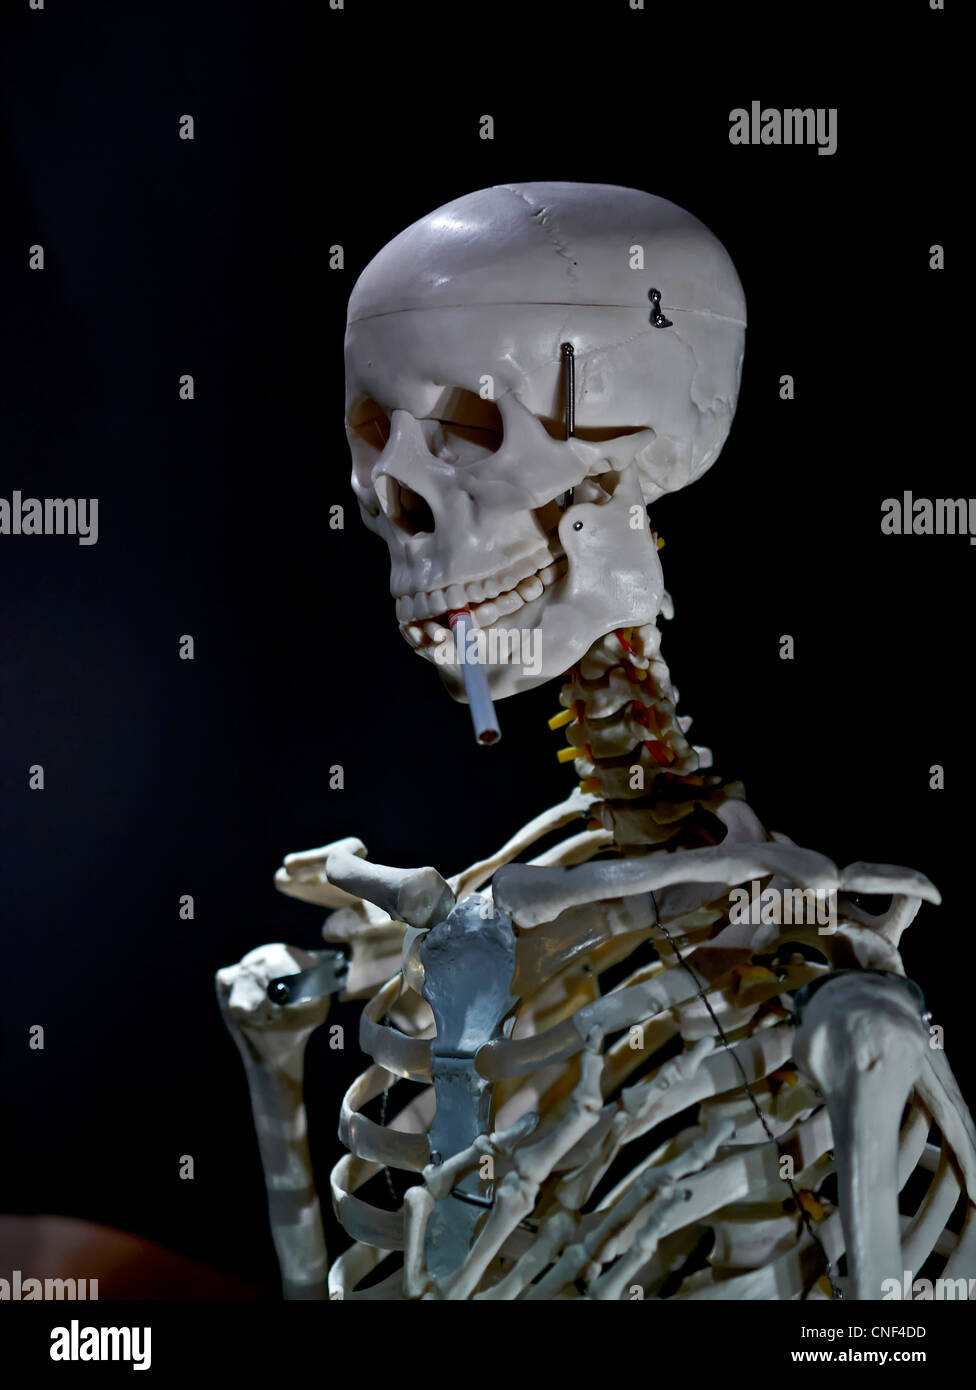 Human skeleton with a cigarette. Concept of the dangers of smoking. Stock Photo